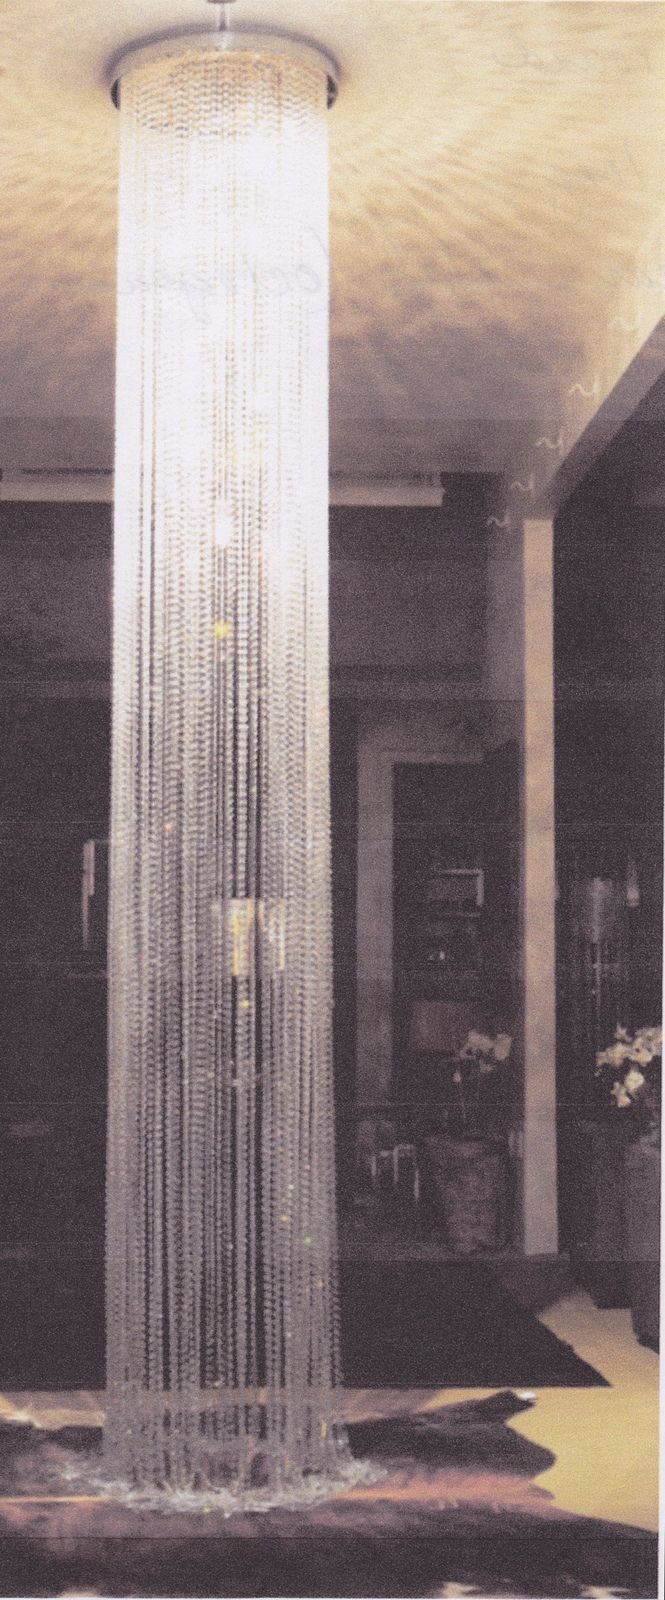 Am6000c Long Crystal Glass Waterfall Shower Chandelier 8ft 12ft